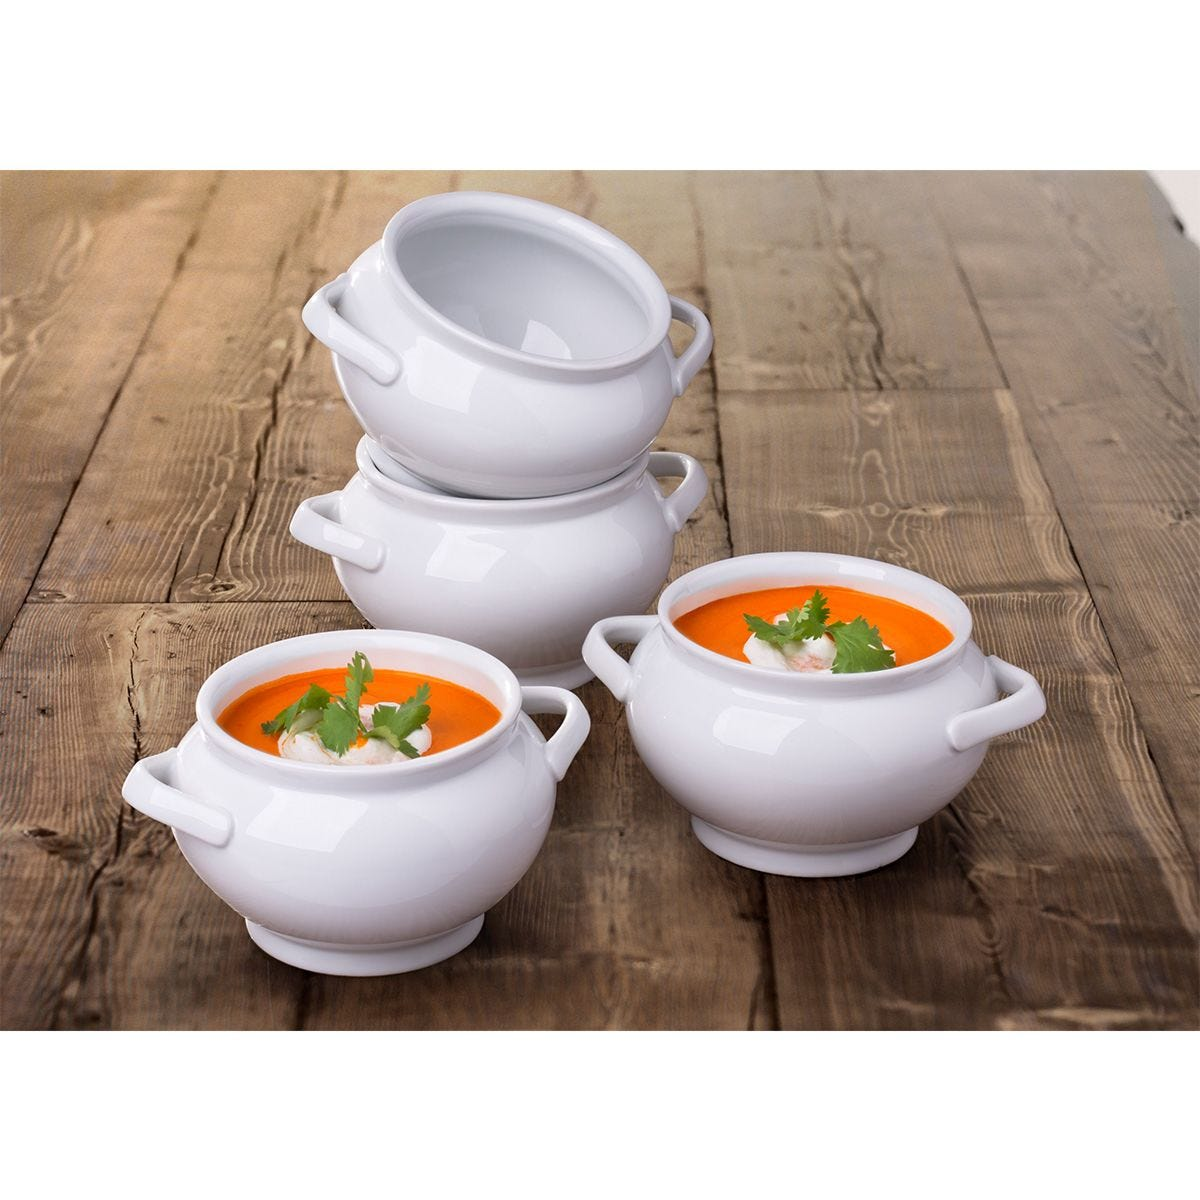 The Waterside 4 Deep Soup Bowls with Handles - White